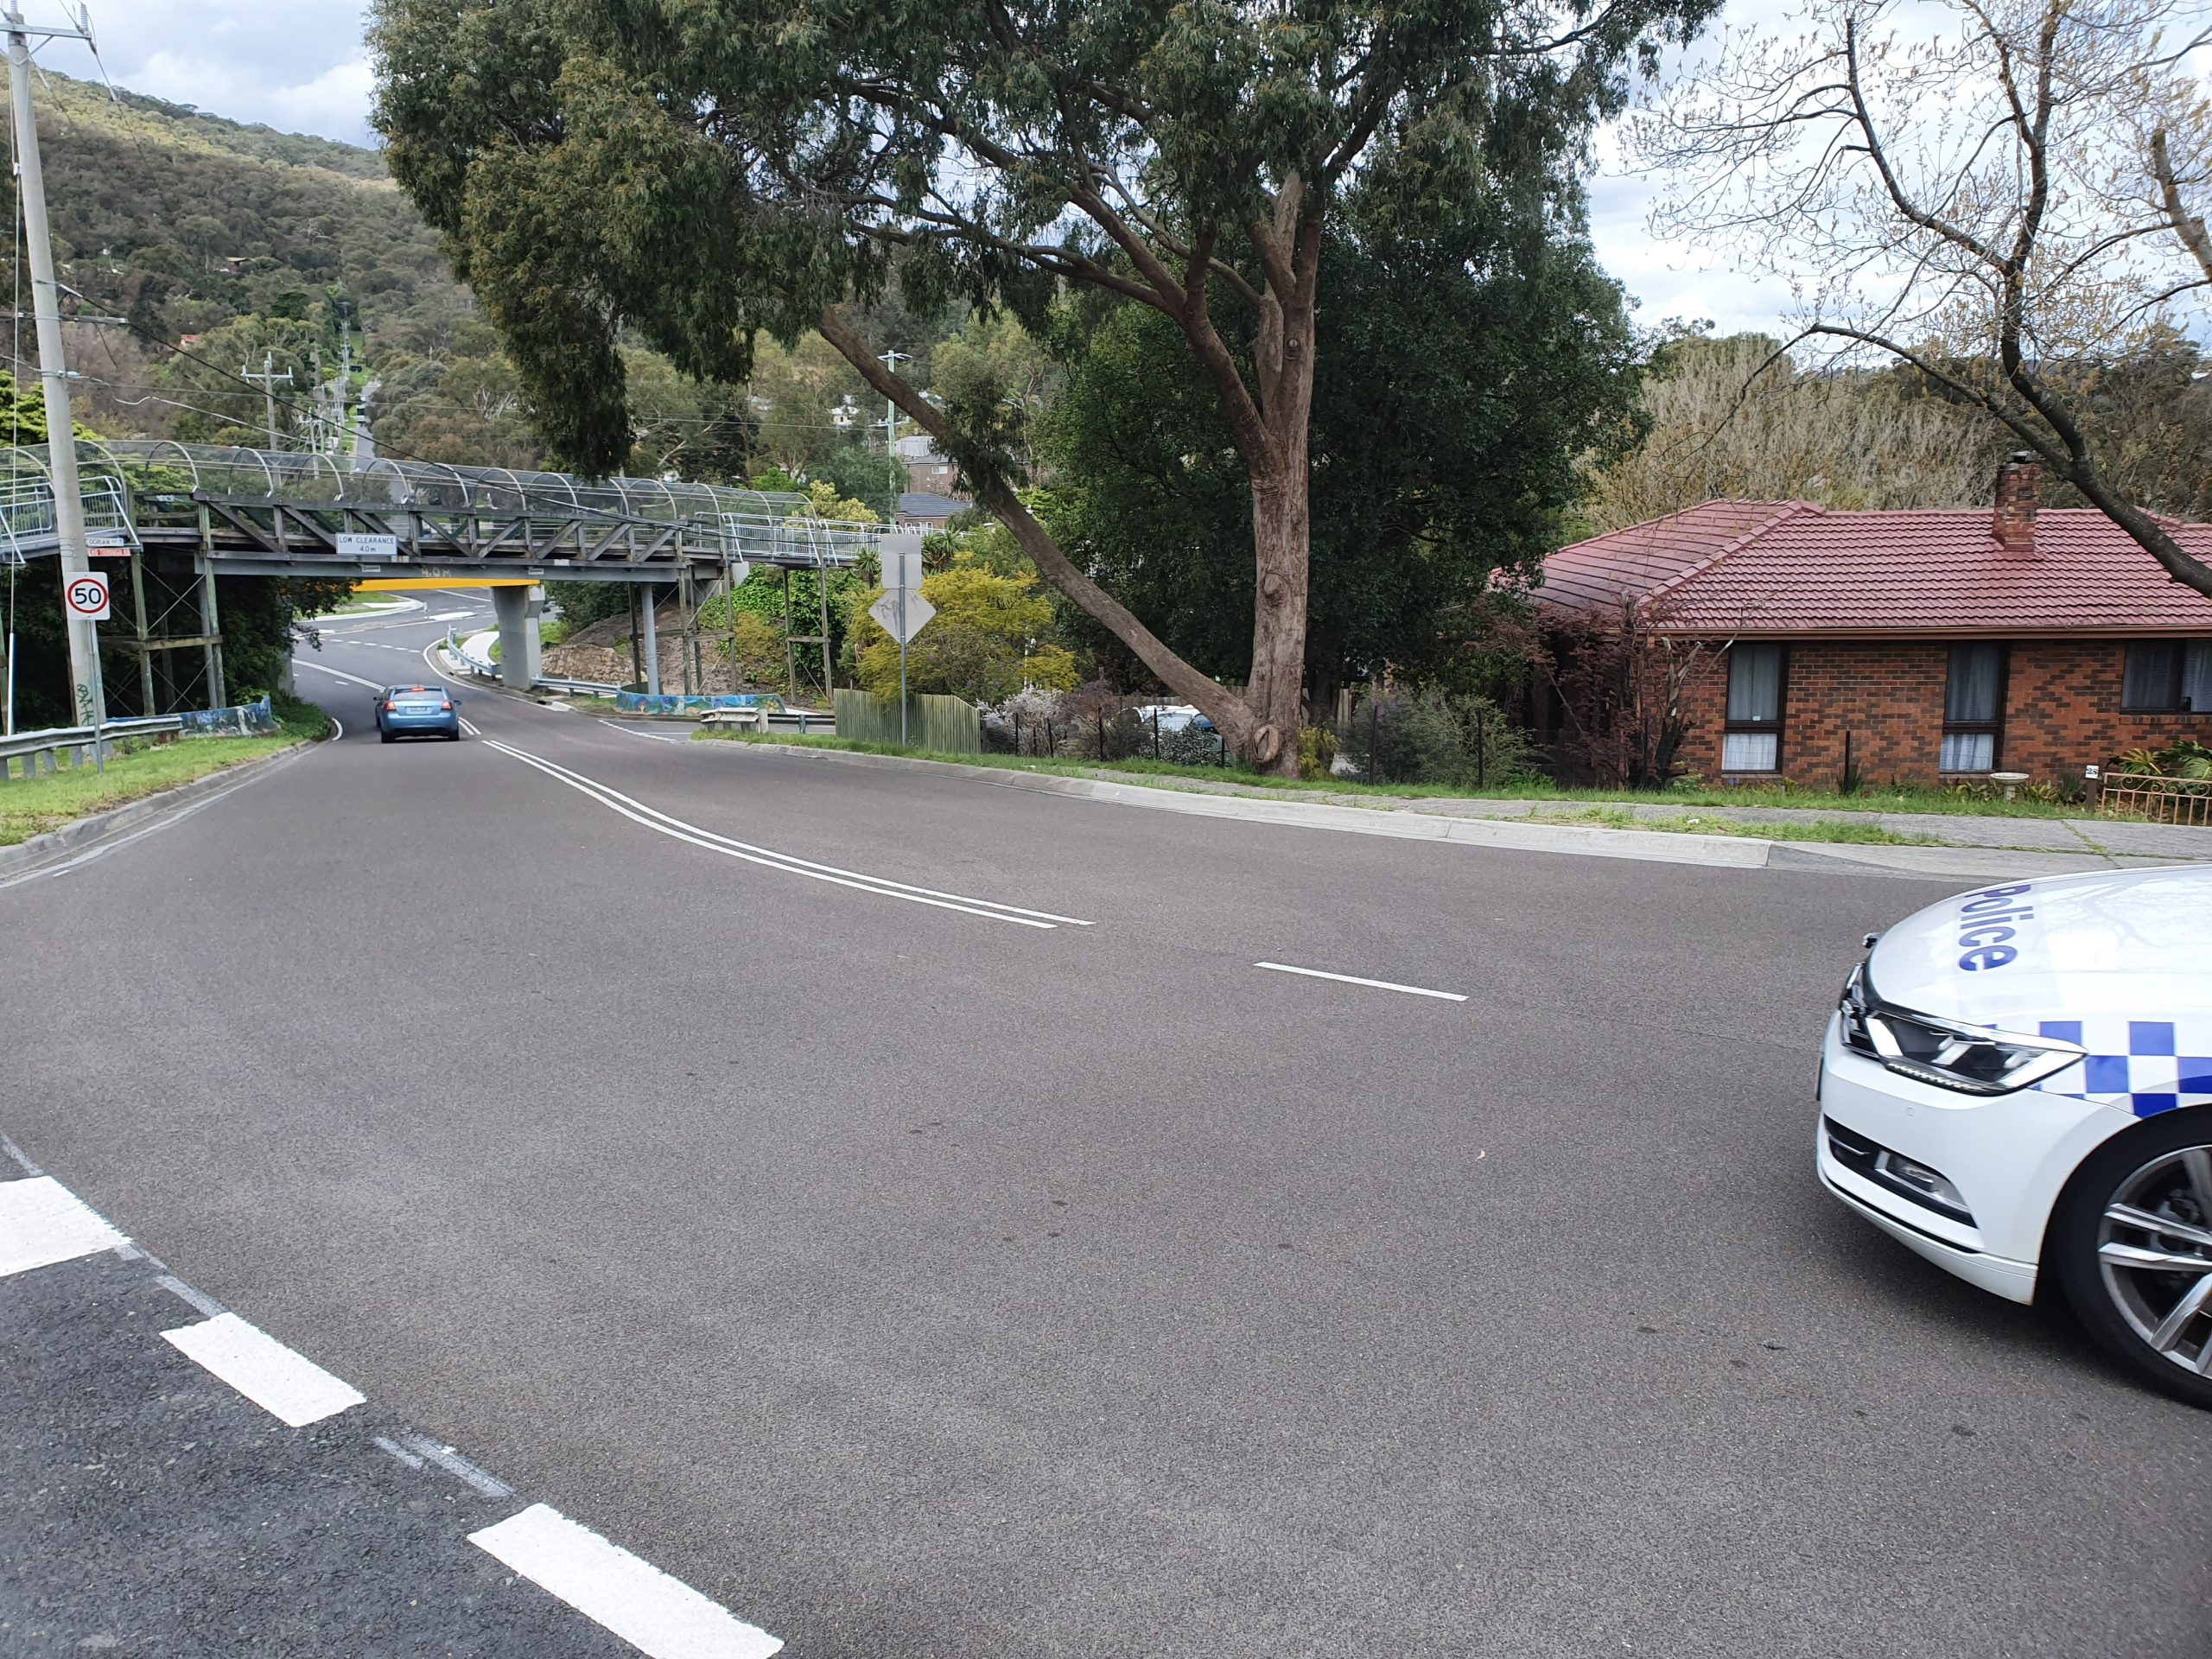 High friction surface treatment on bend in road